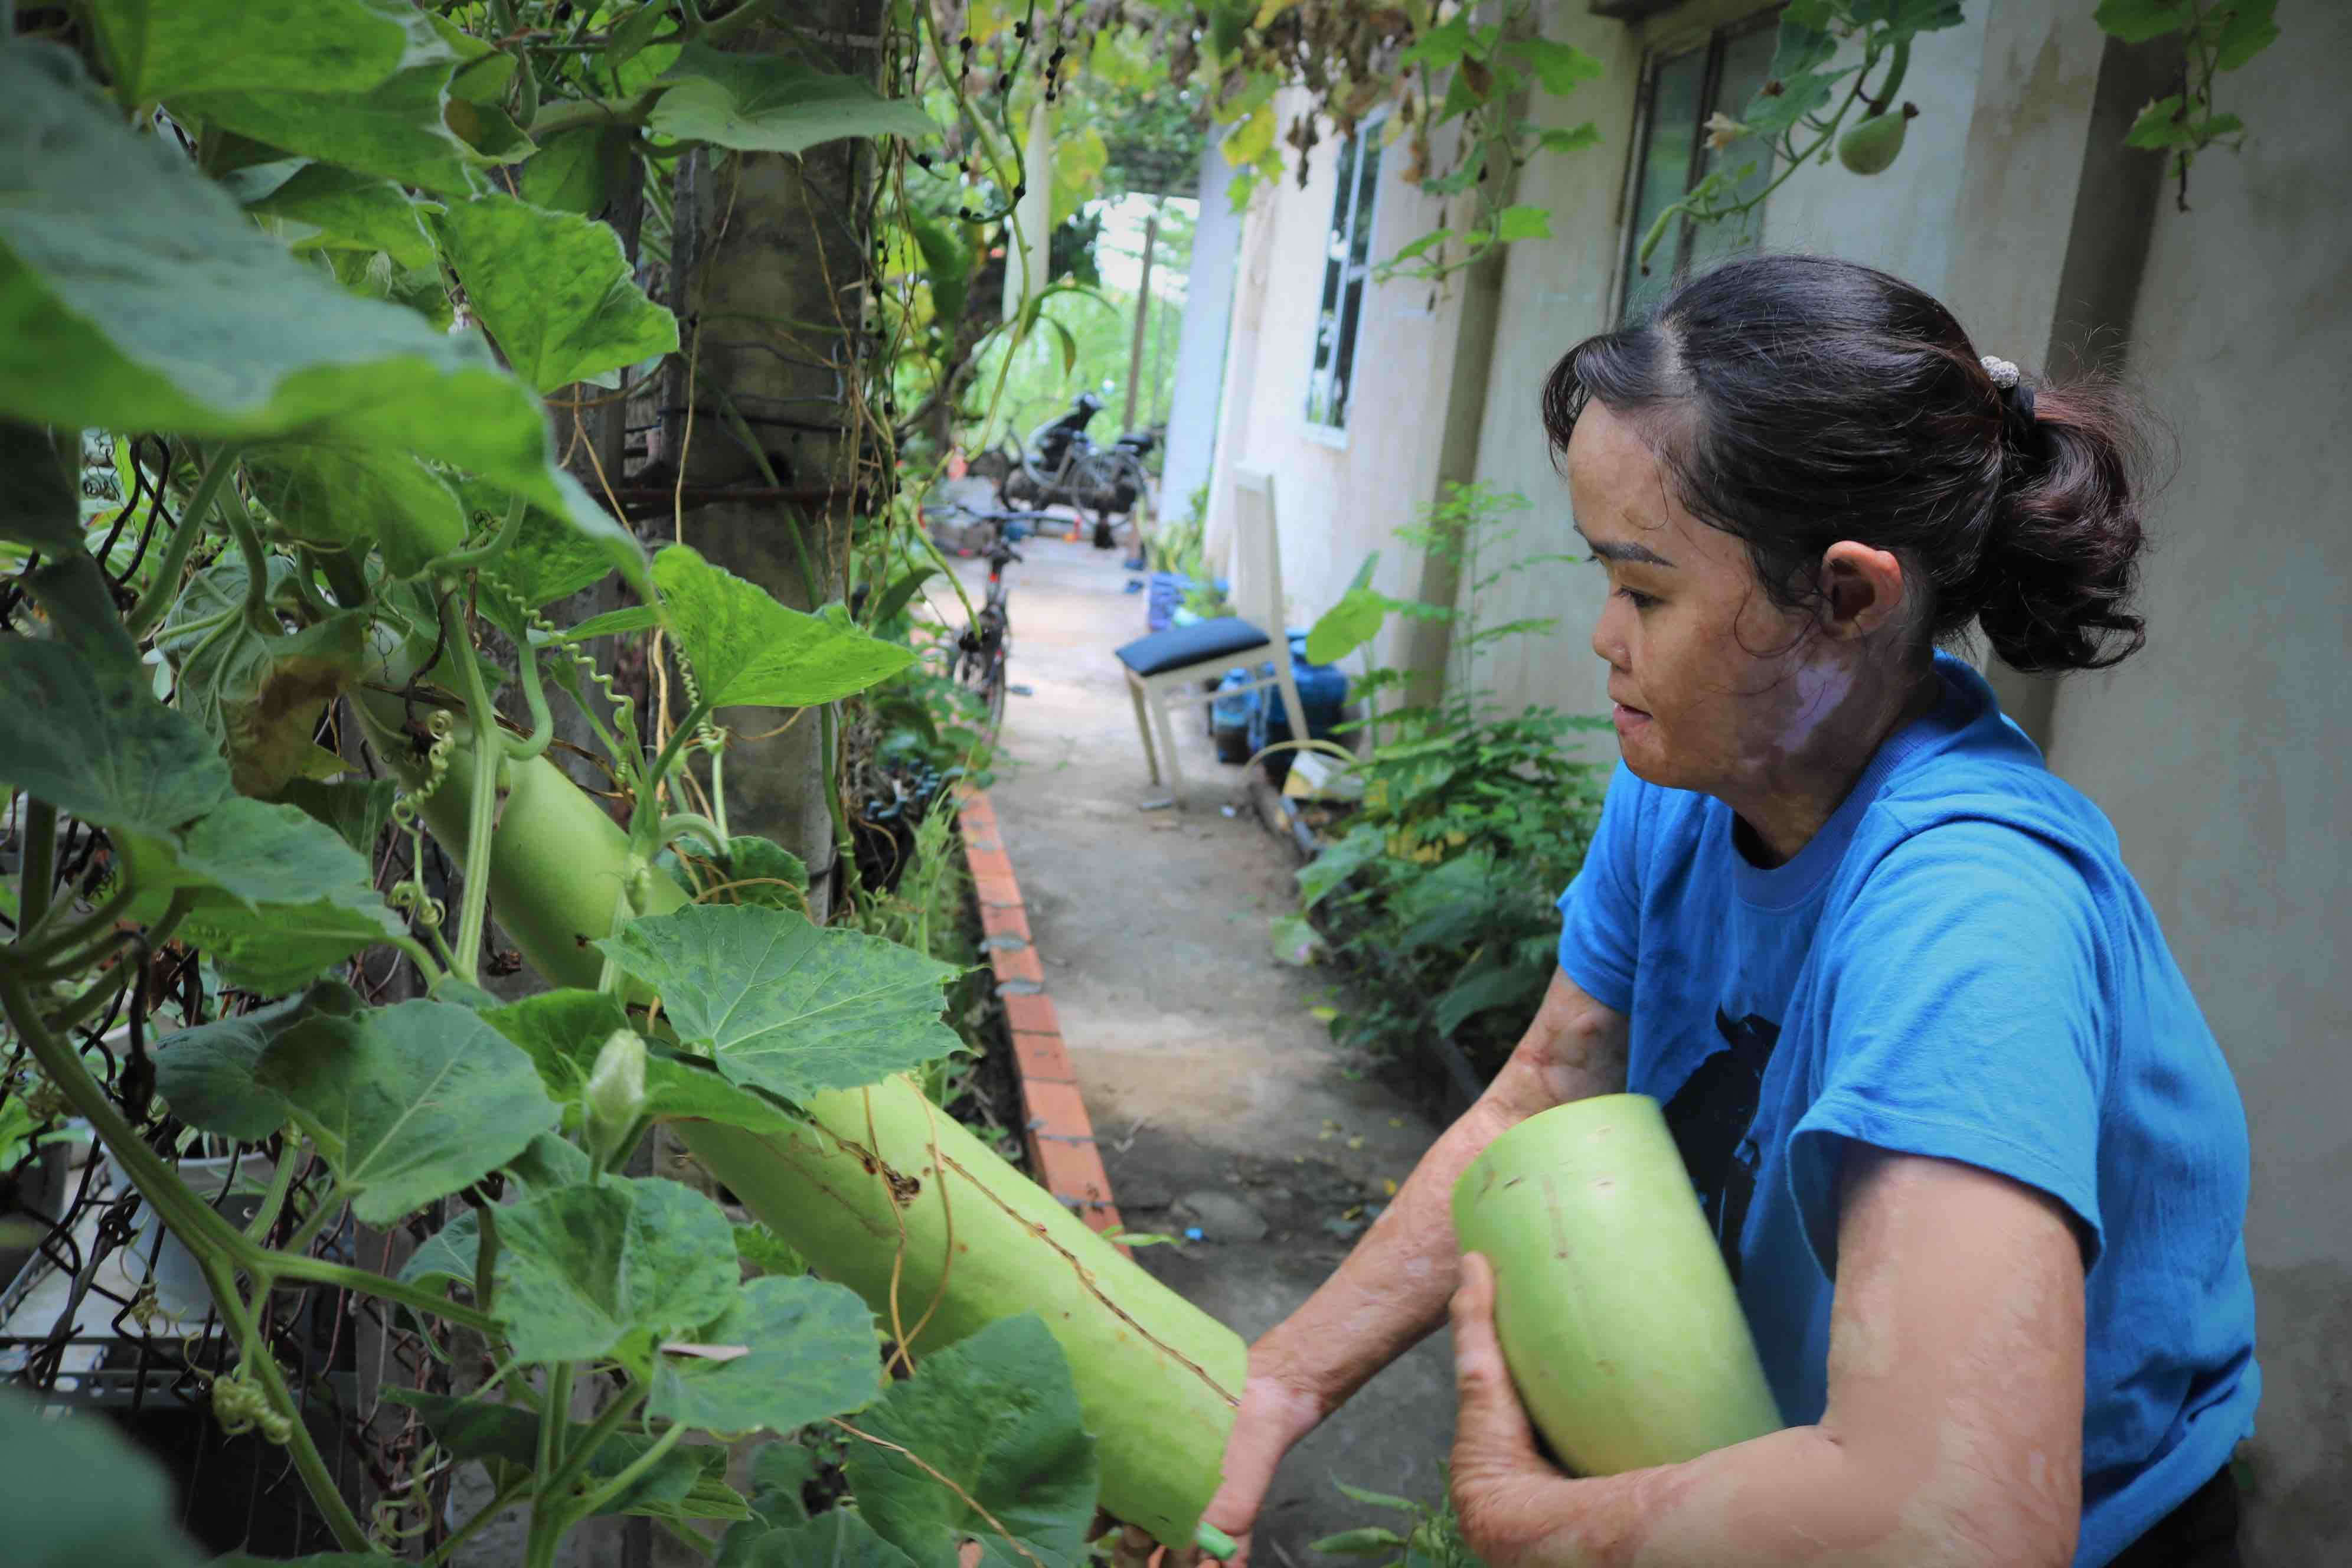 Ngan harvests calabash at her home in Cu Chi District, Ho Chi Minh City. Photo: Hoang An / Tuoi Tre